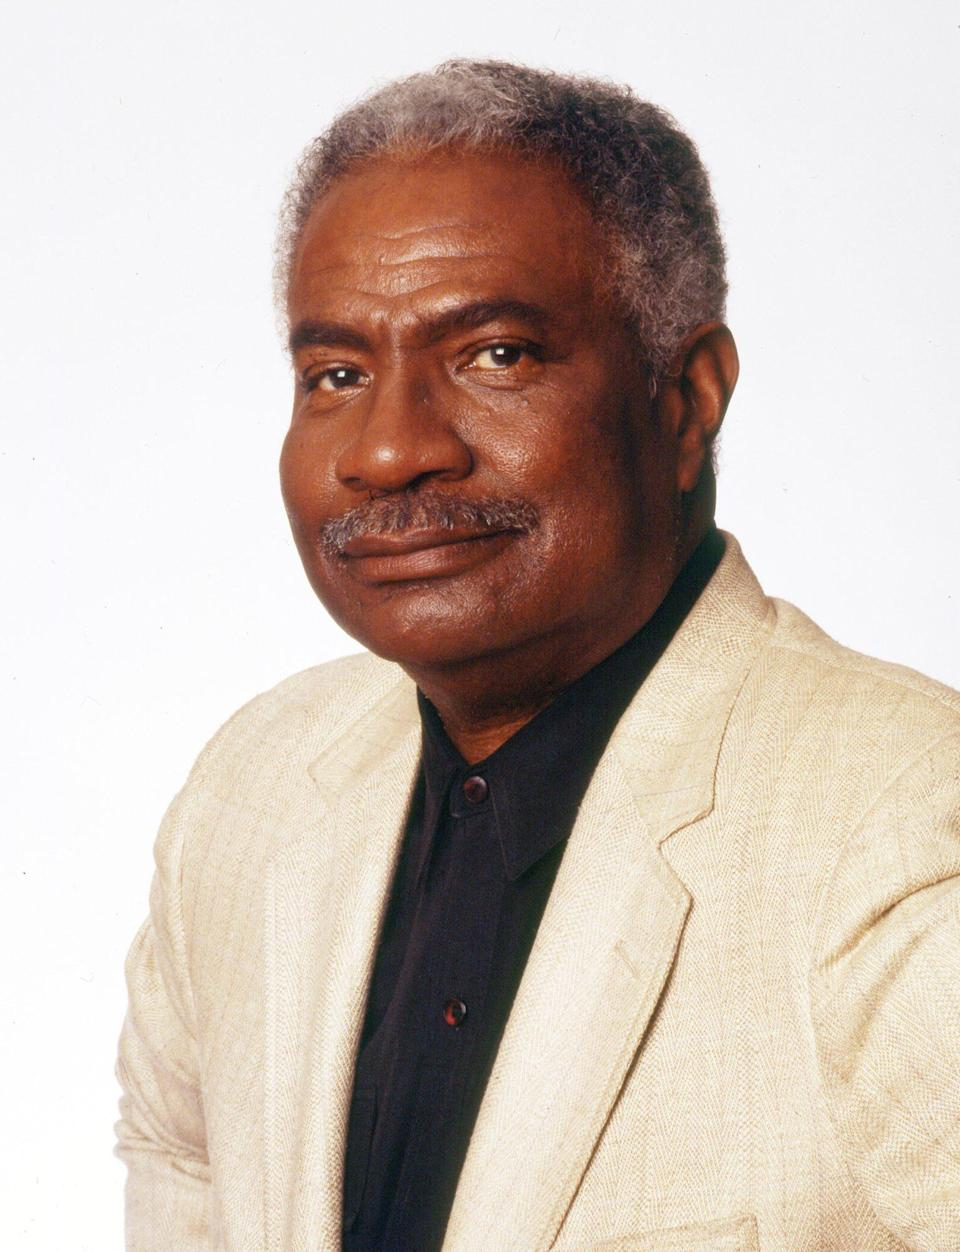 <p>Months after his death in 2005, actor, director, writer and civil rights activist Davis received his fourth Emmy nomination — for his guest role on <em>The L Word, </em>on which his character also died. The episode featuring his character's death, which aired after Davis' death, was dedicated to him. He lost the Emmy to Ray Liotta (<em>ER</em>).</p>